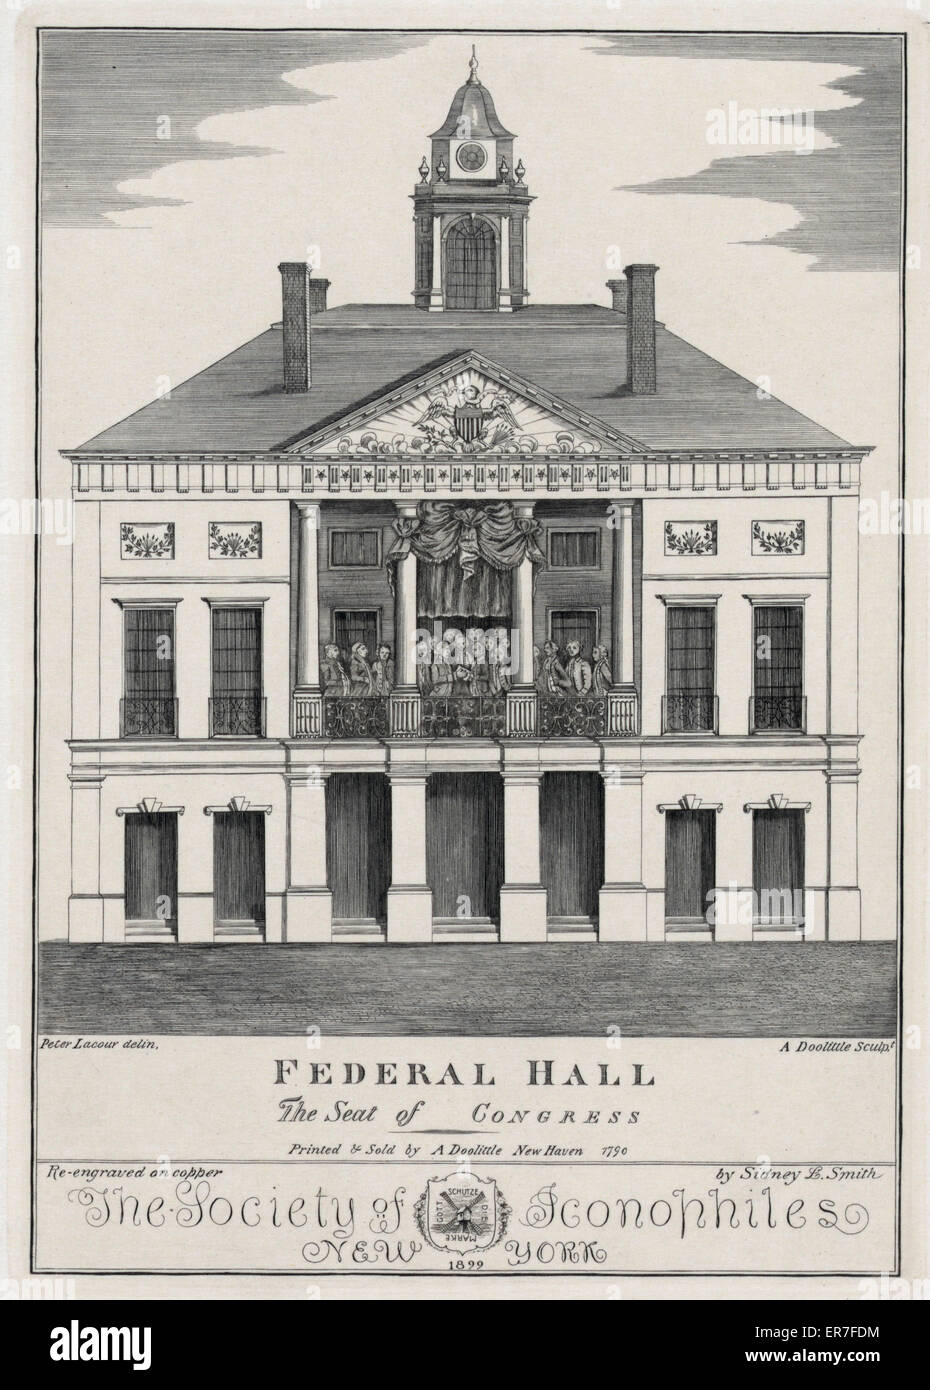 Federal Hall. The seat of Congress. Date 1899. - Stock Image